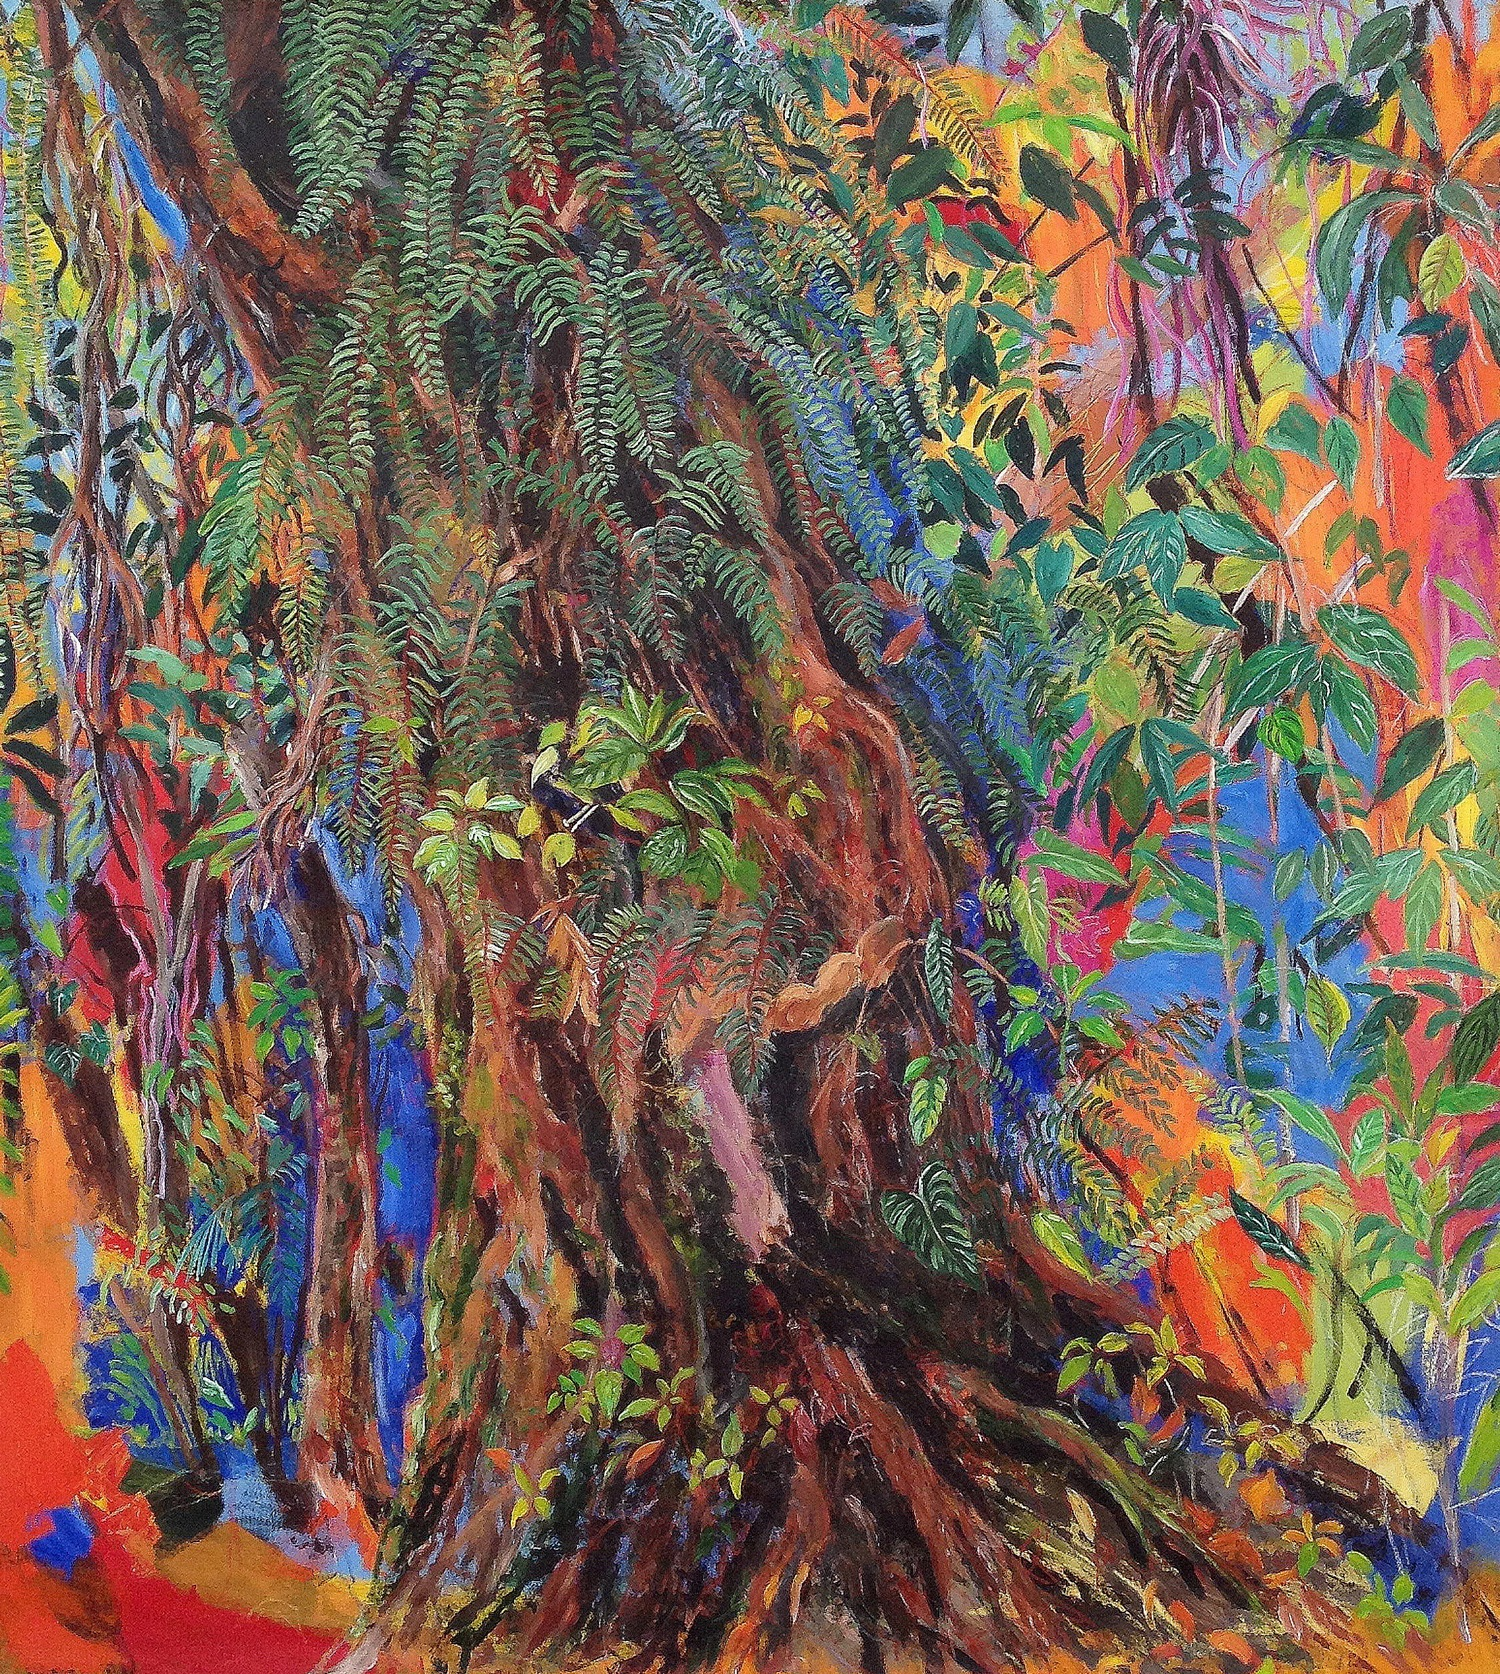 rainforests damian elwes